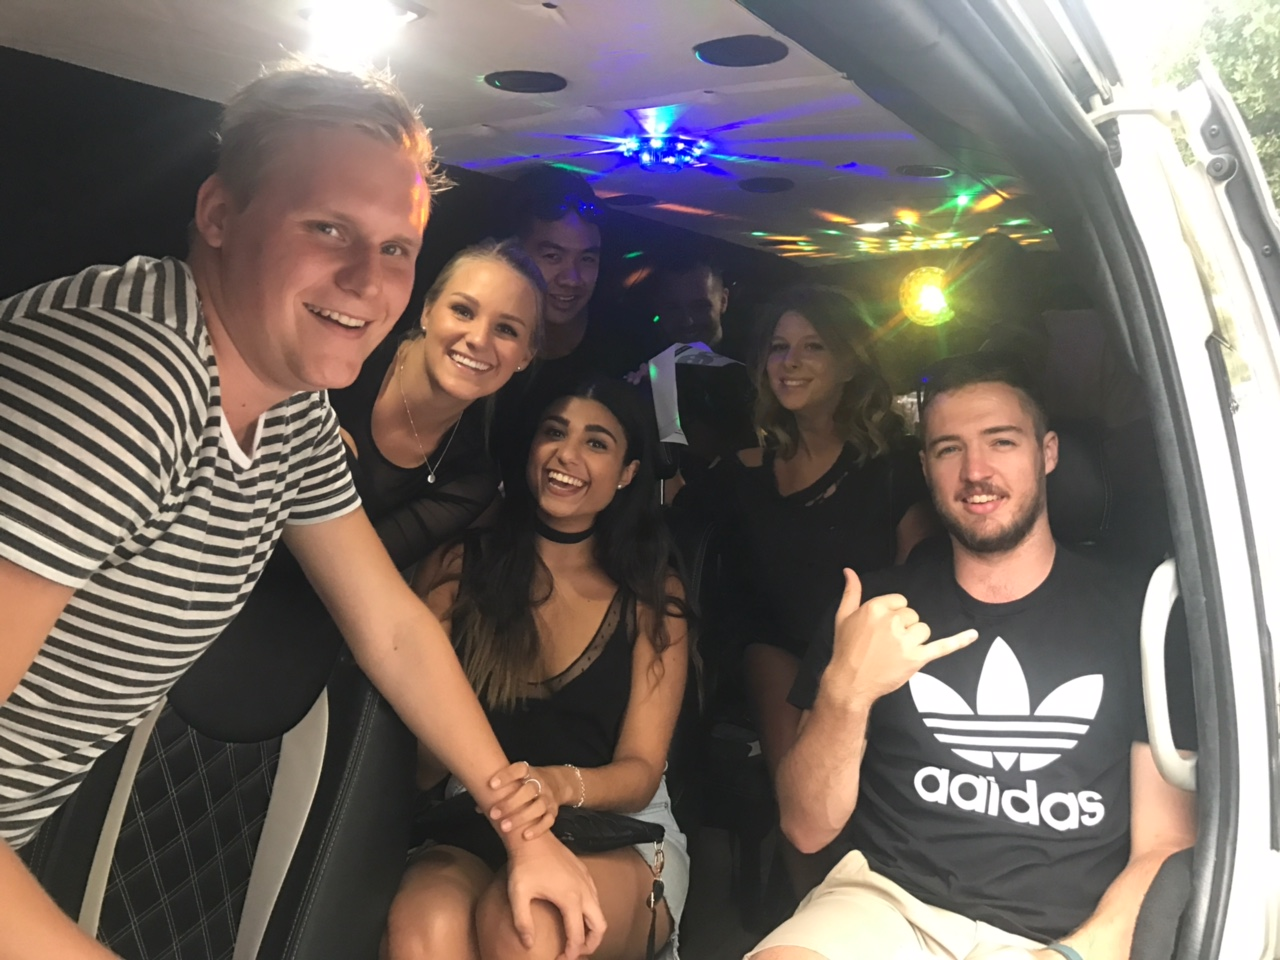 Bling Bling Party Bus - Sydney Night Club Transfers